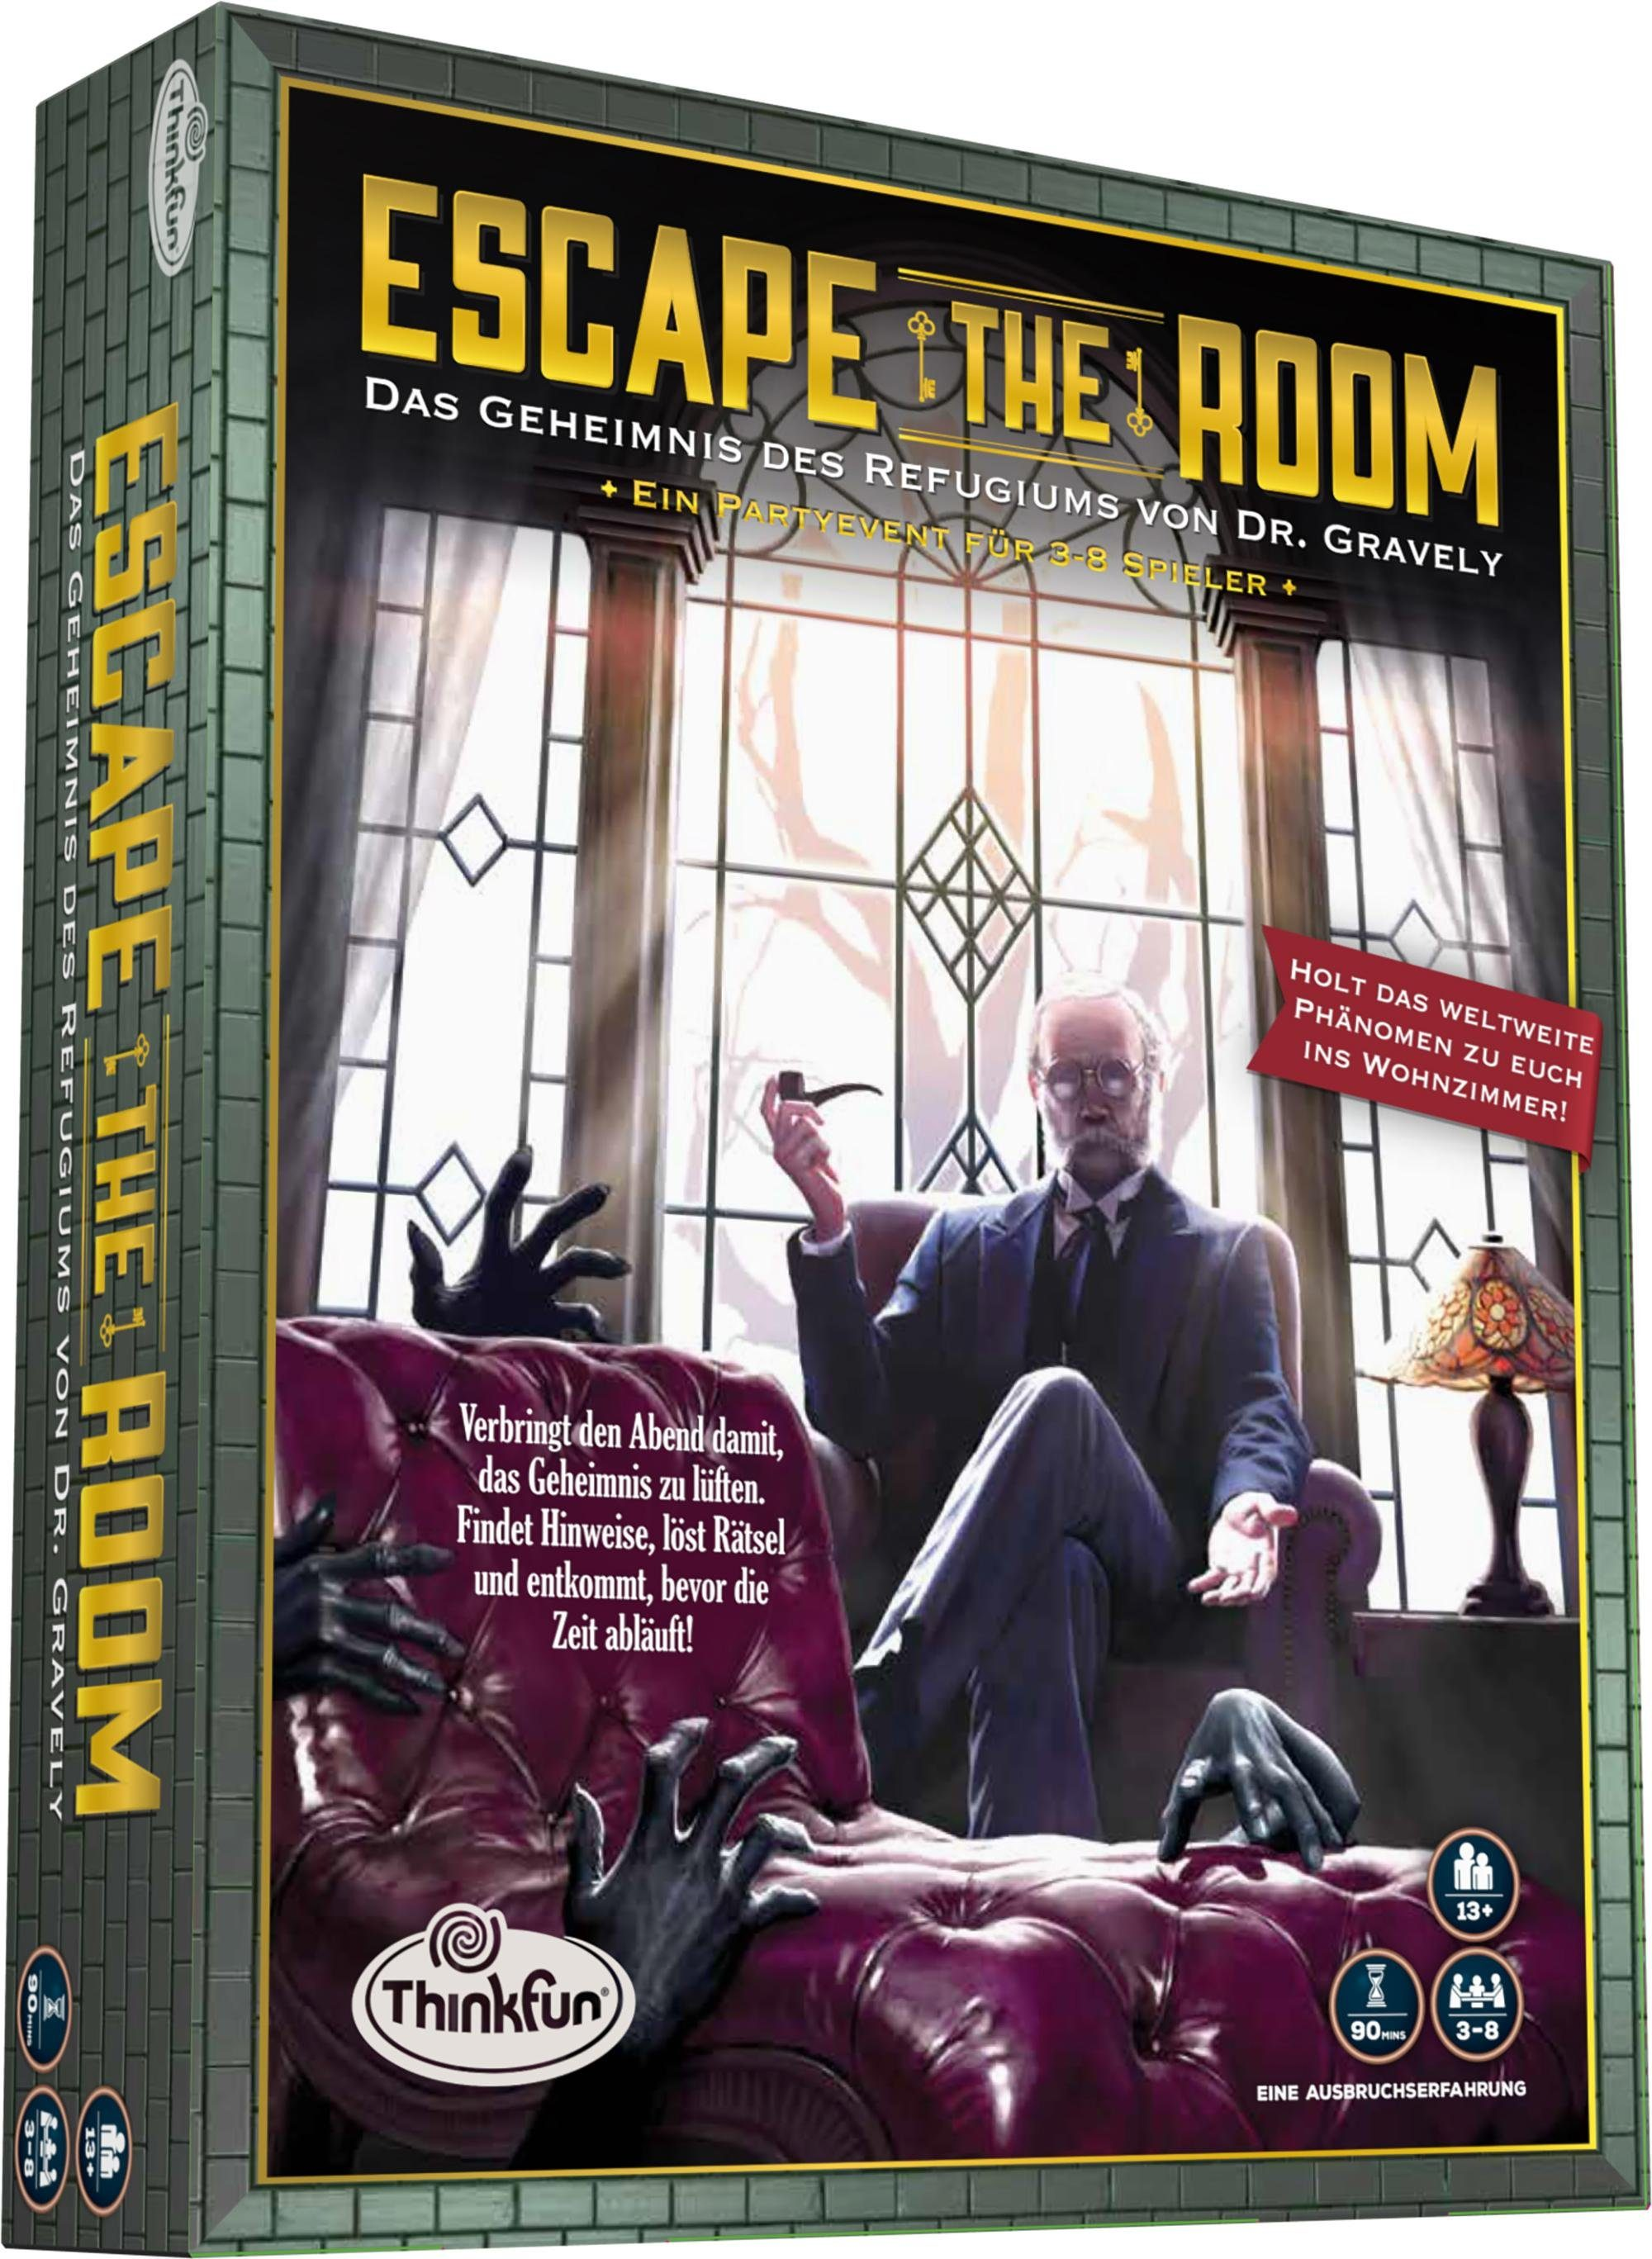 Thinkfun Strategiespiel, »Escape the Room, Das Geheimnis des Refugiums von Dr. Gravely«